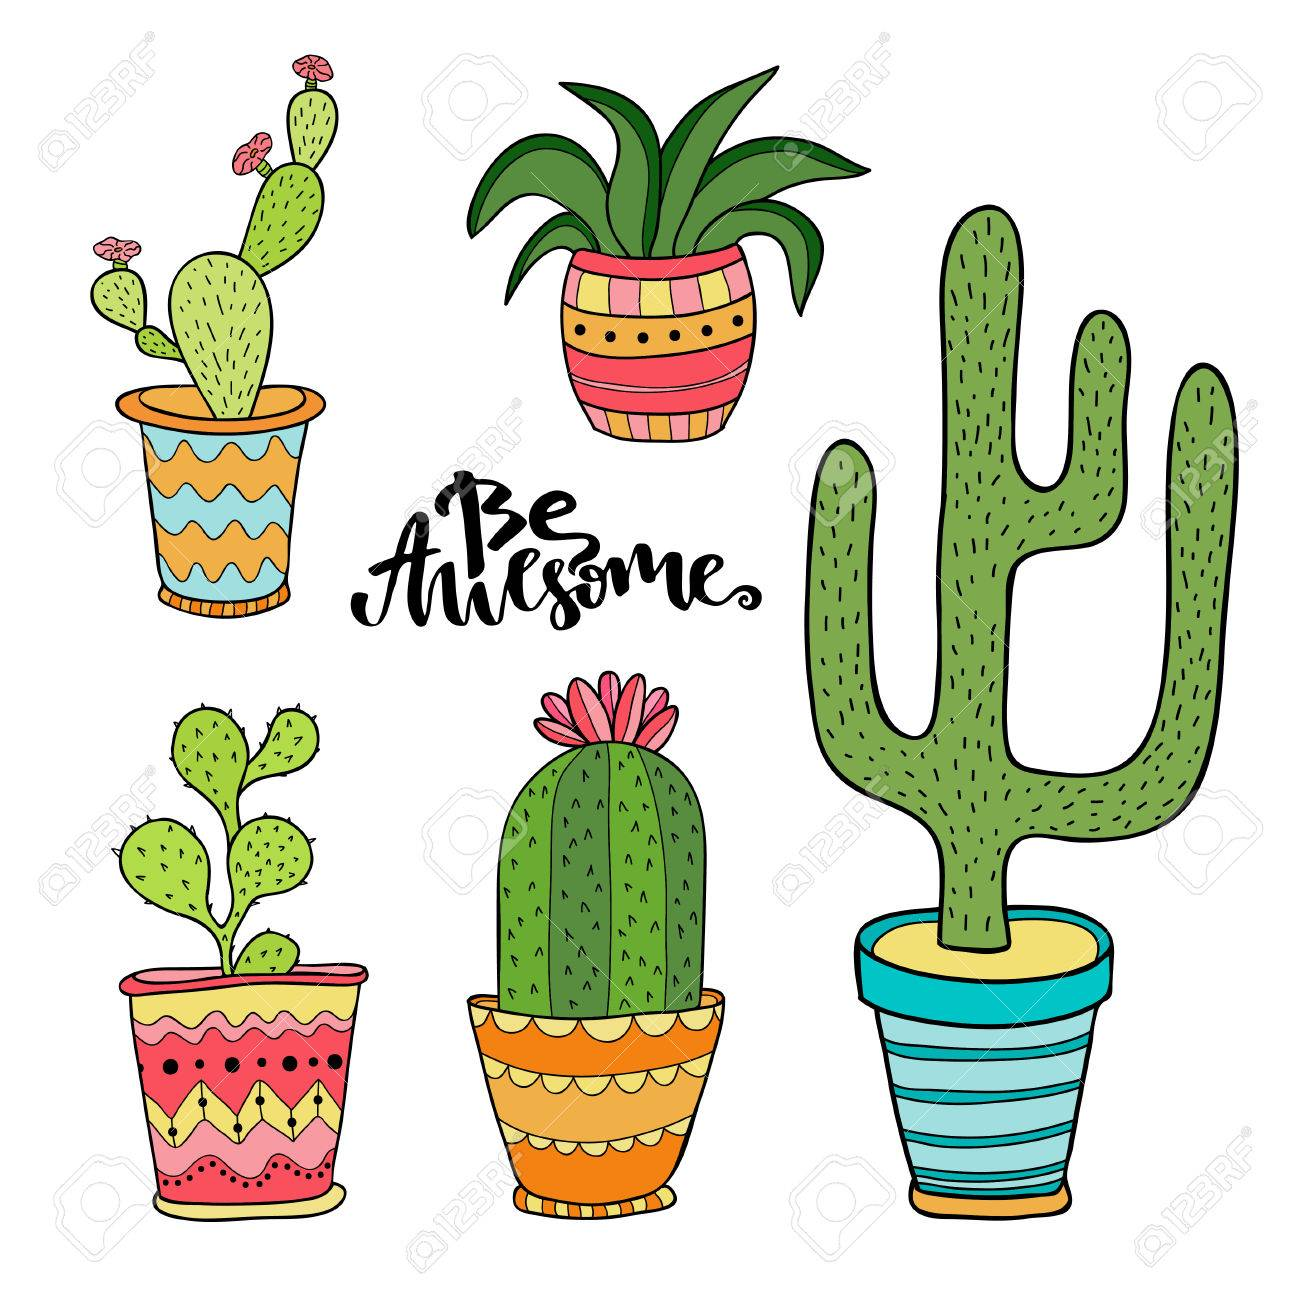 Succulent And Cactus Set Cartoon Plants In Pots Illustration Royalty Free Cliparts Vectors And Stock Illustration Image 69939609